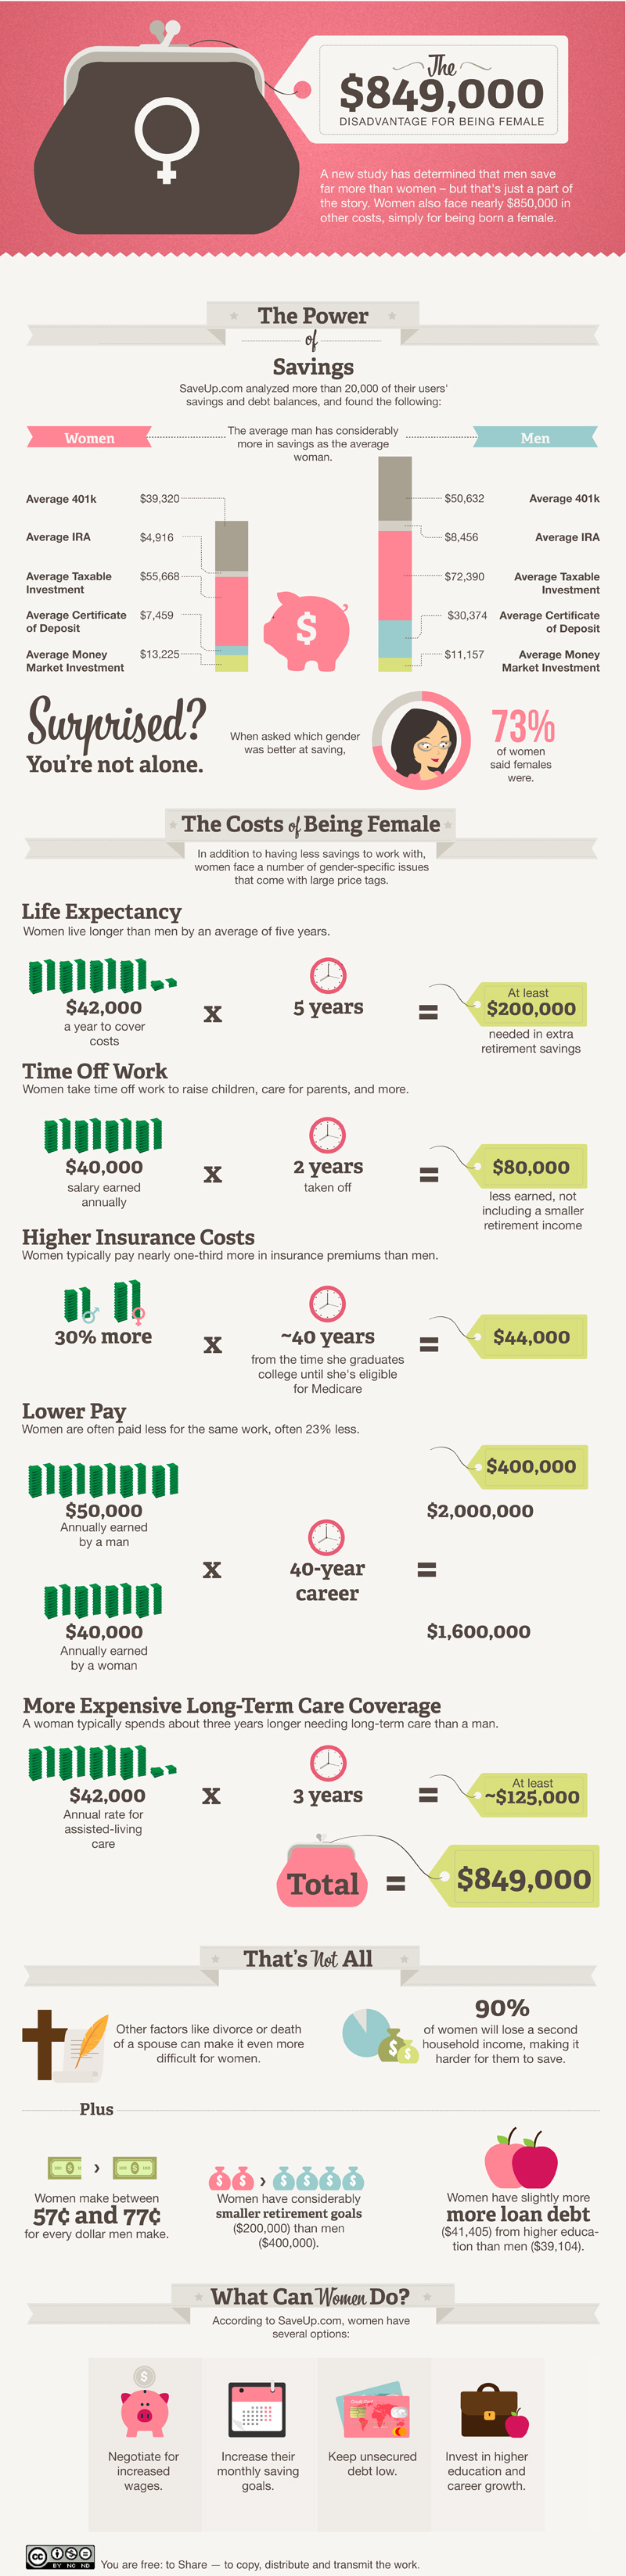 infographic - the cost of being a woman